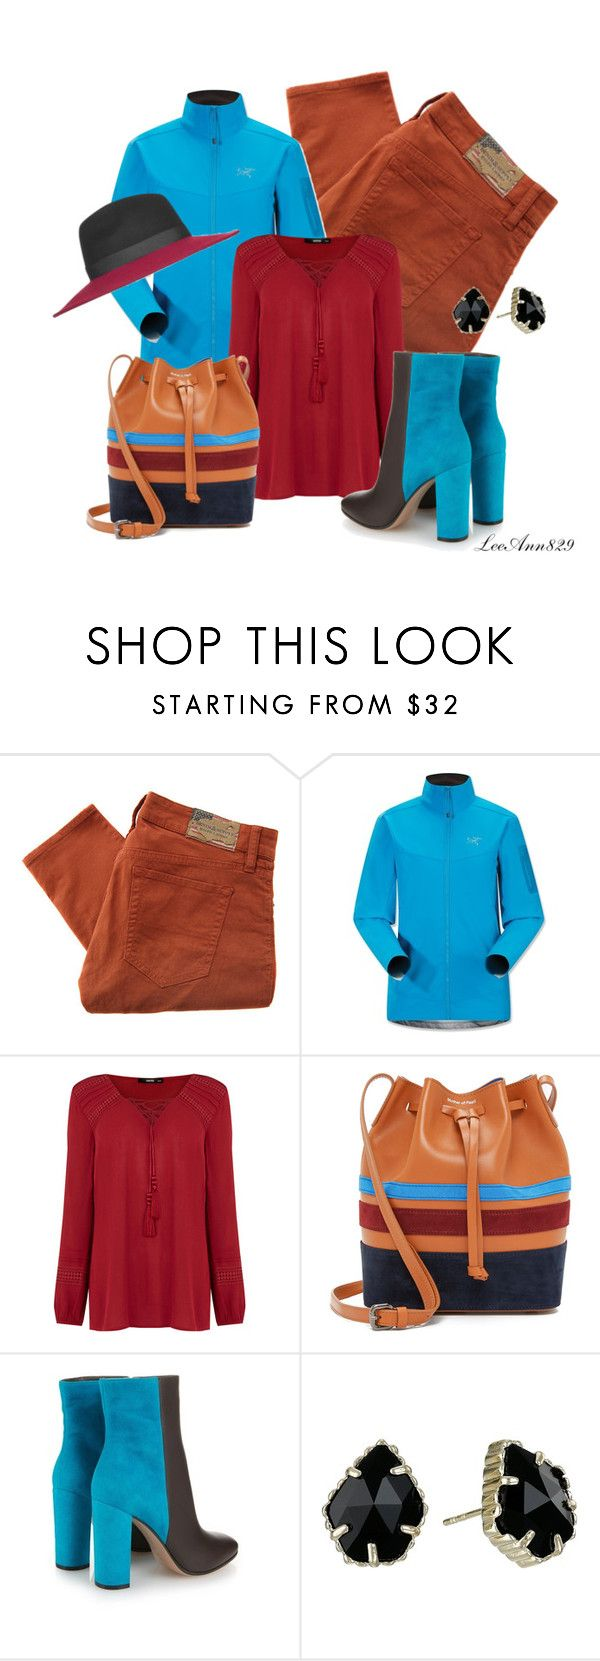 blue coat contest by leeann829 on Polyvore featuring Oasis, Arc'teryx, Denim & Supply by Ralph Lauren, Mary Katrantzou, Mother of Pearl, Kendra Scott, Topshop, women's clothing, women's fashion and women